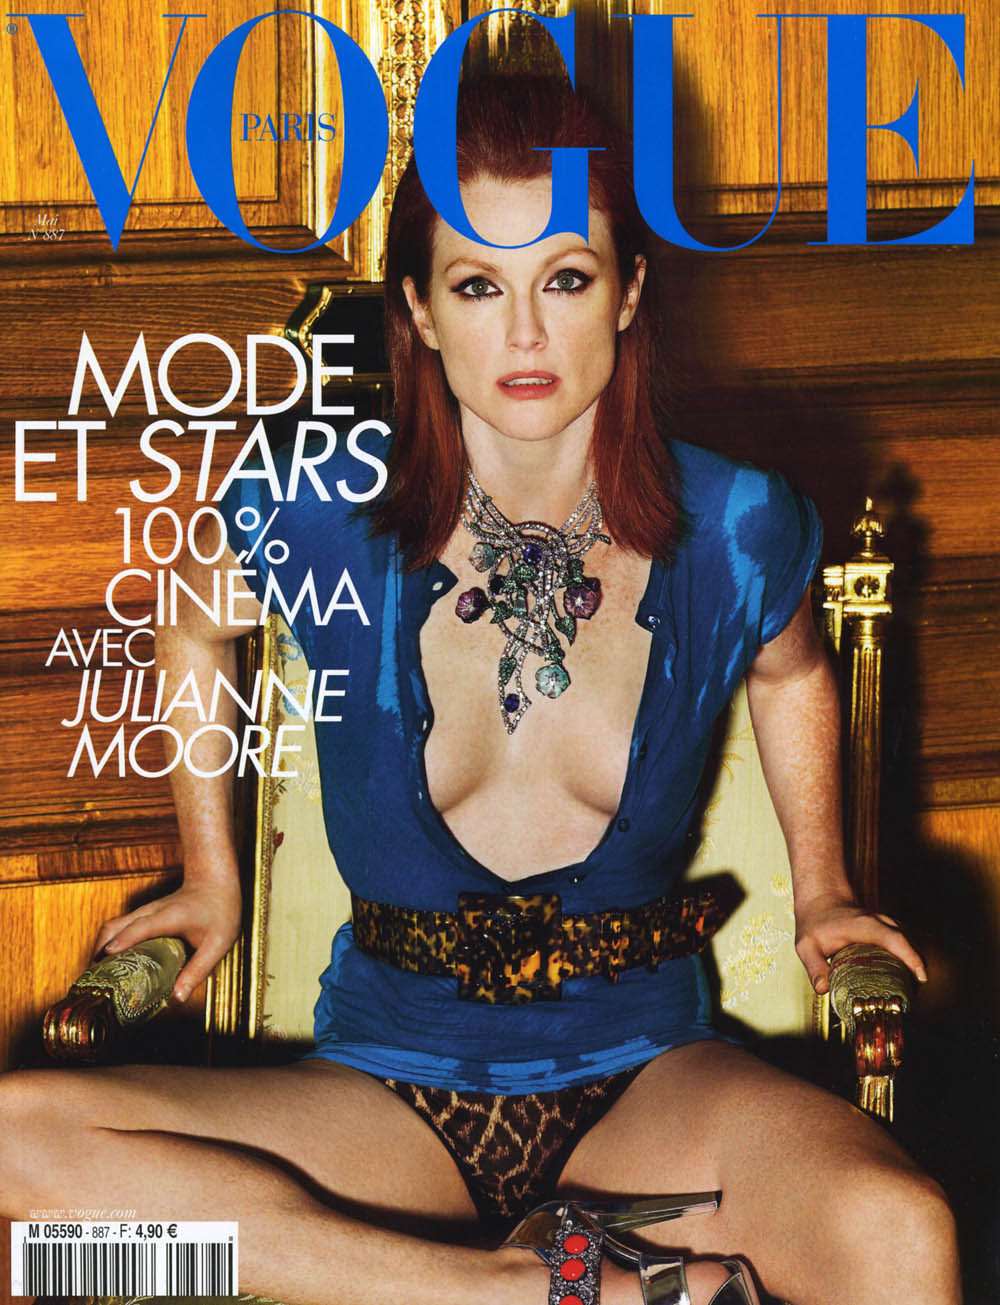 http://stylefrizz.com/img/julianne-moore-vogue-paris-may-2008-hq.jpg